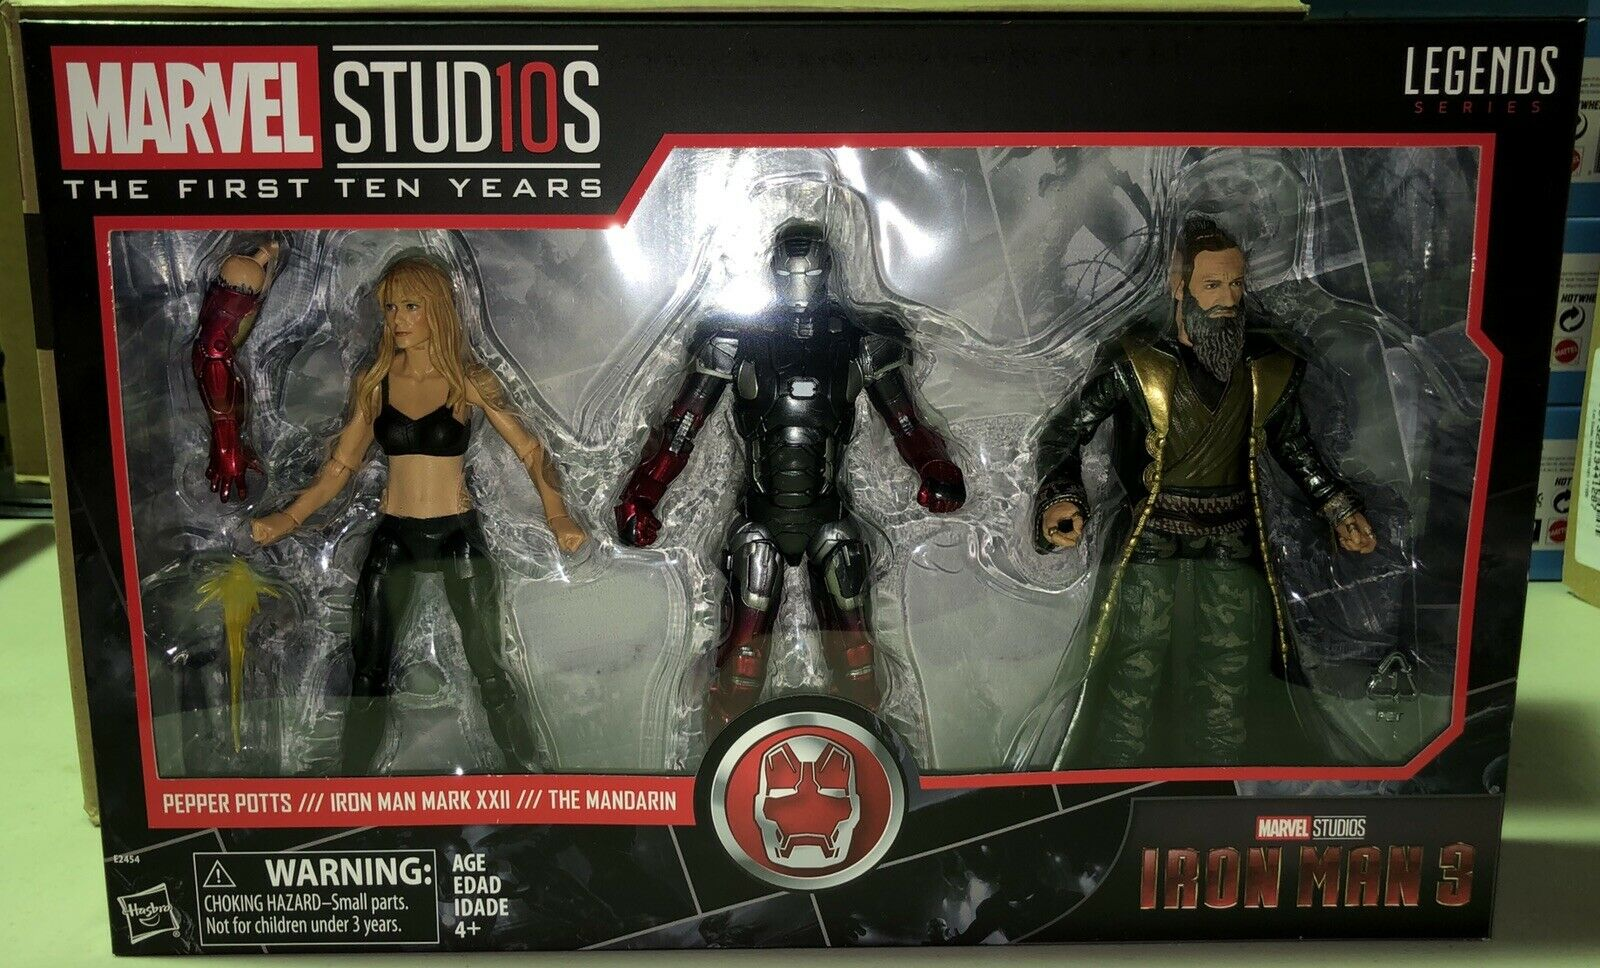 Marvel Legends MCU 10th Anniversary Pepper Potts Iron Man Mark XXII The Mandarin